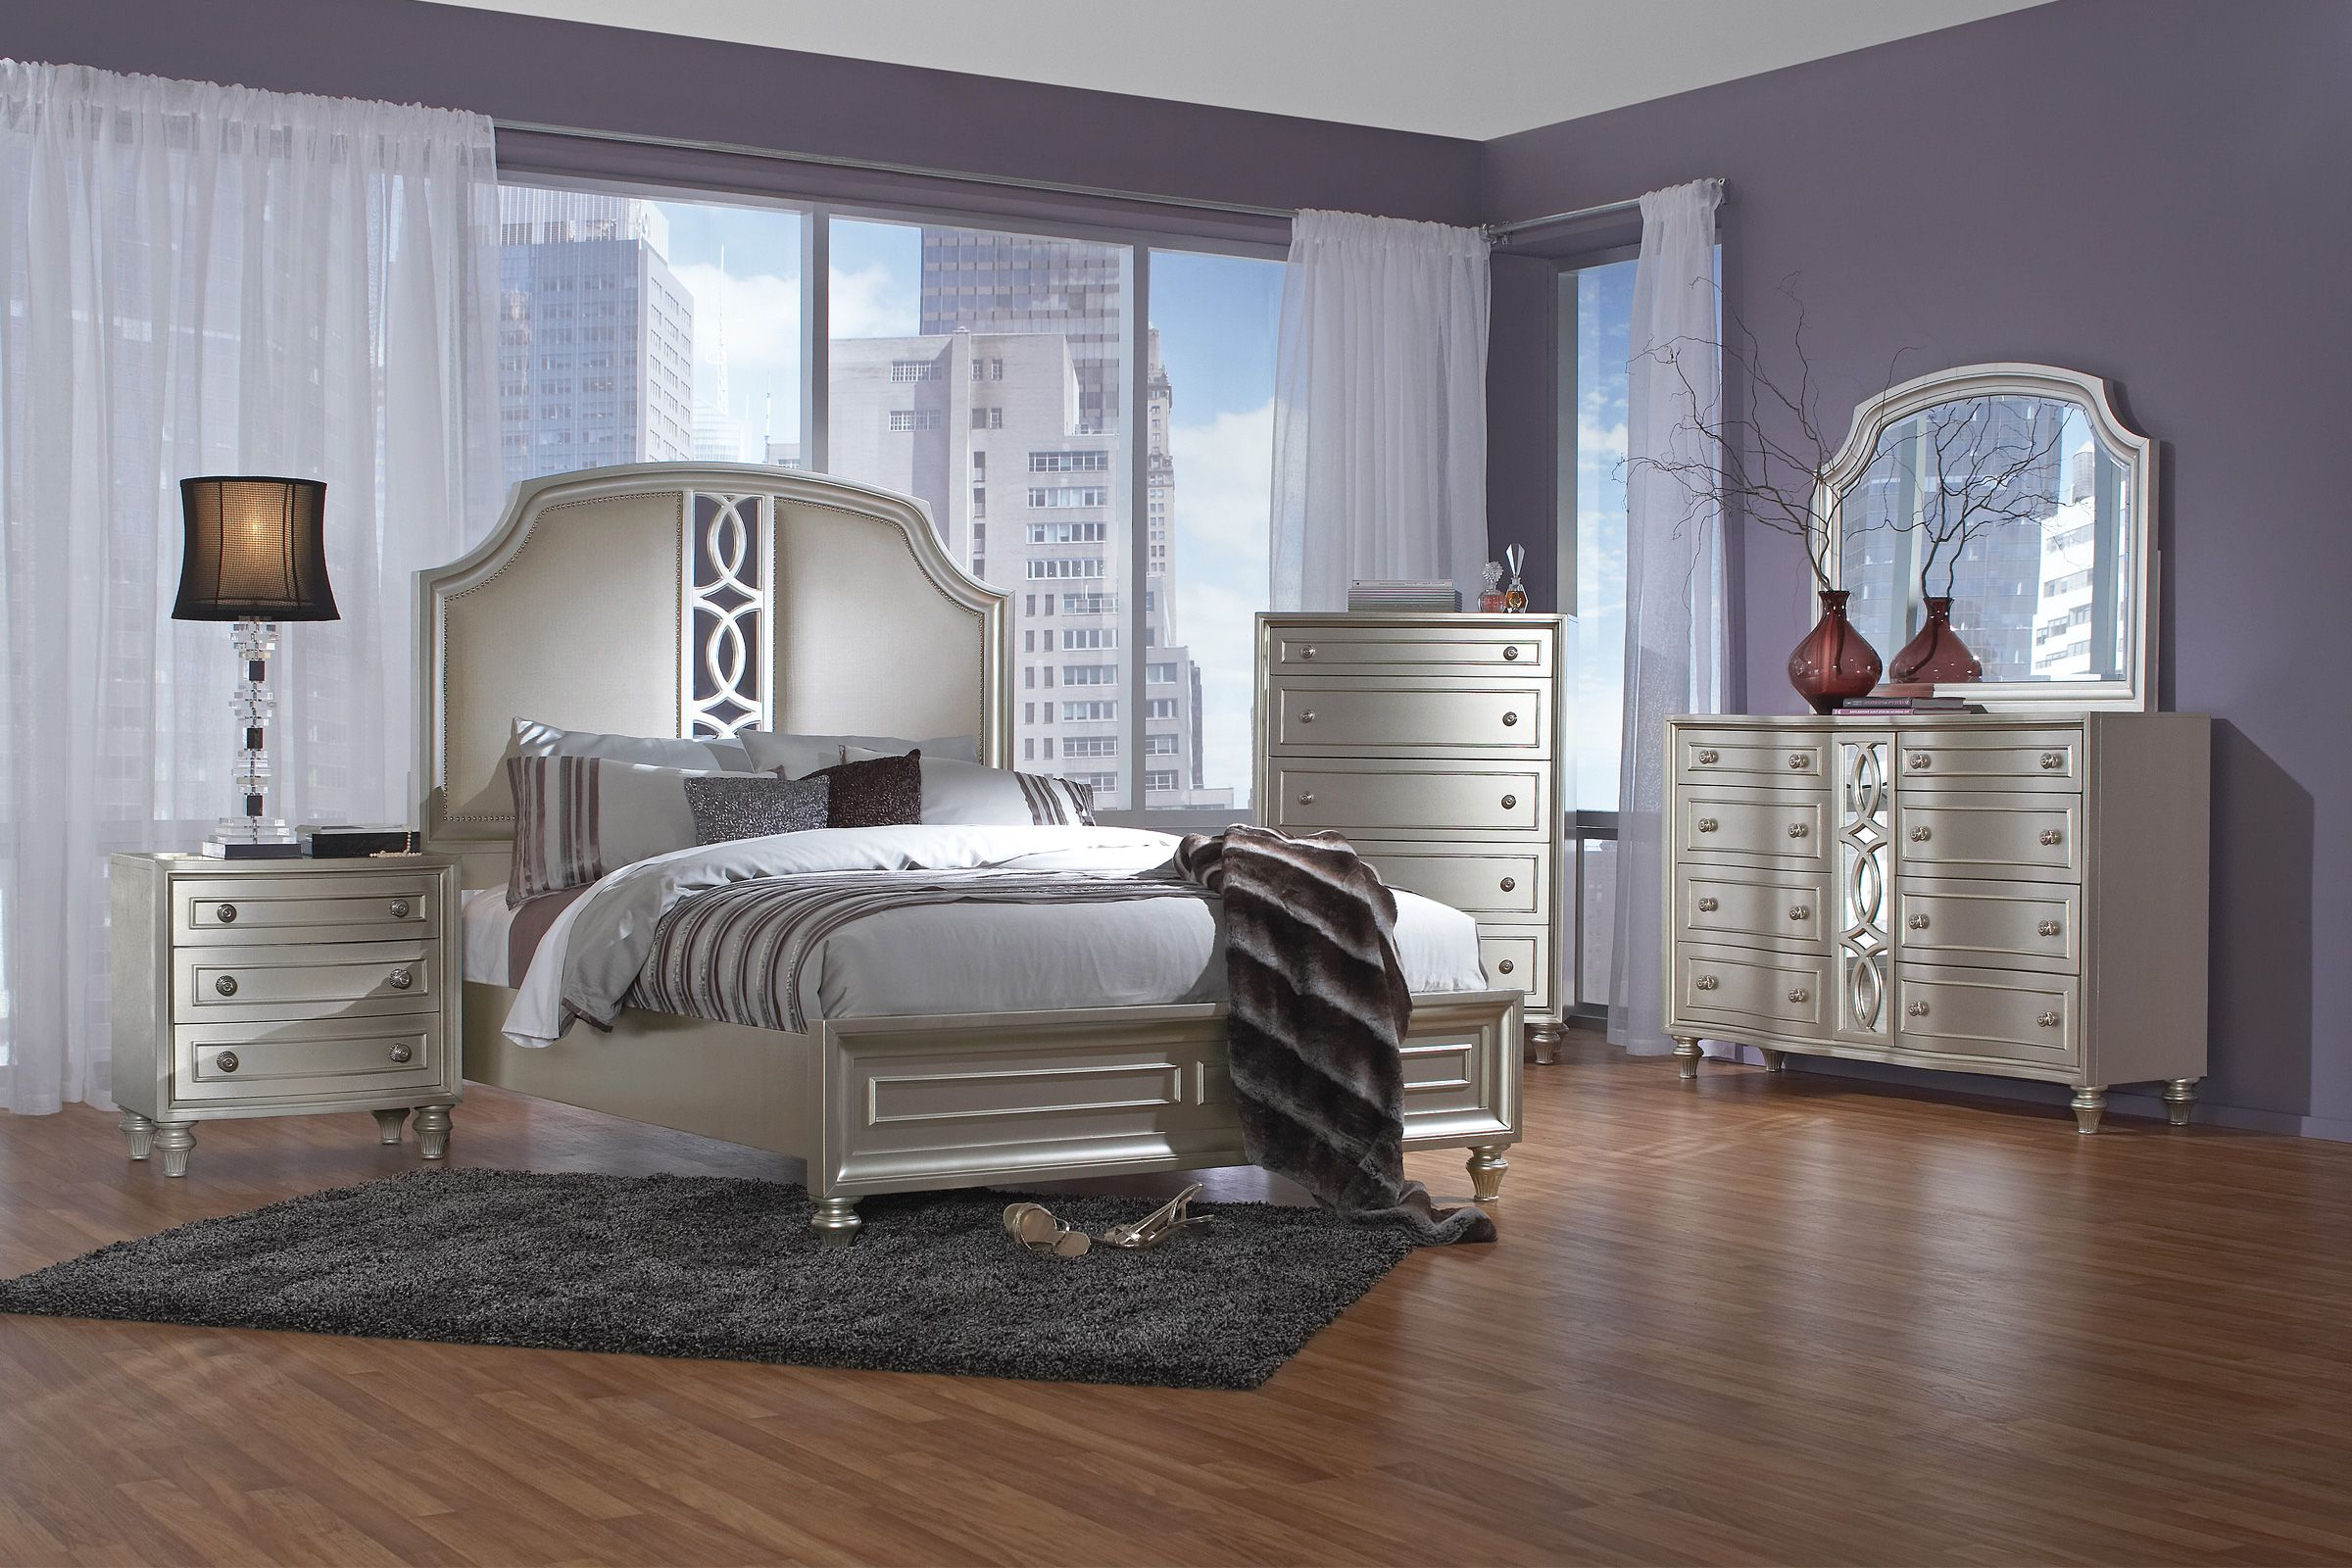 Strange Colleen Inactive See Master Youth Bedrooms Bedroom Interior Design Ideas Helimdqseriescom